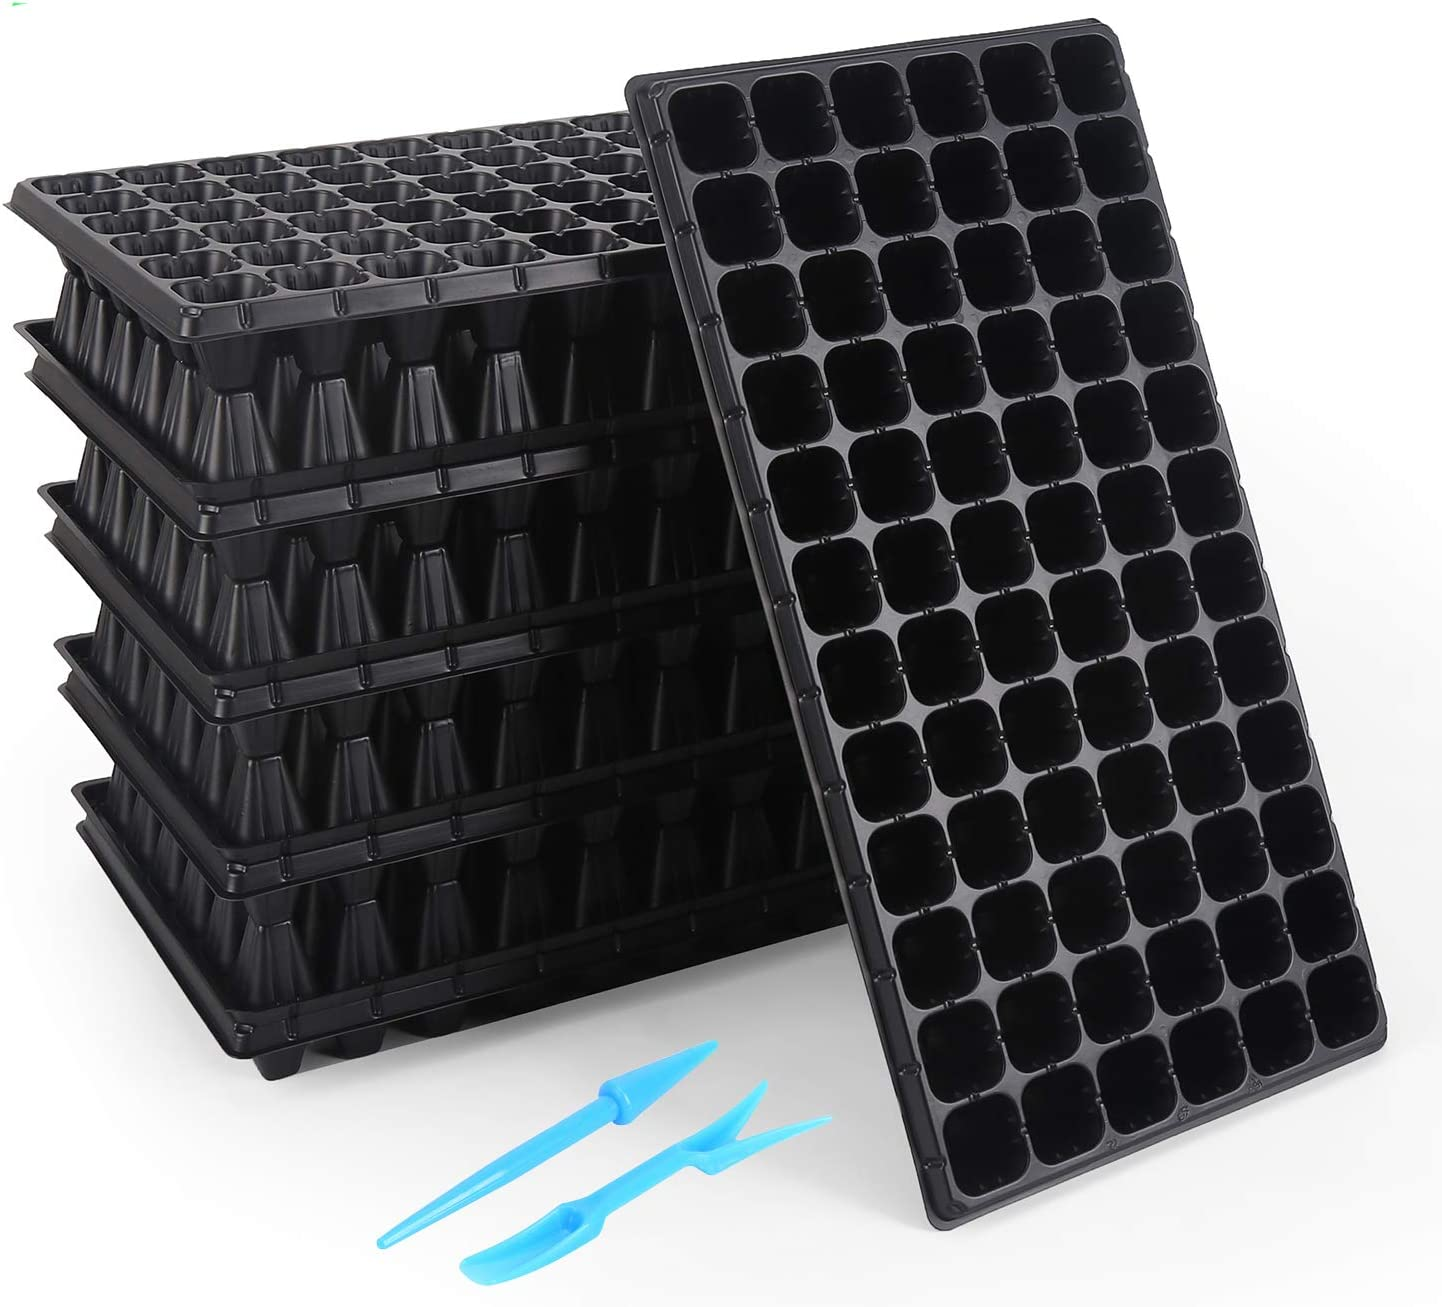 120-6-cell Trays Seed Starter Trays 720 Cells for Seed Germination +10 Plant Labels